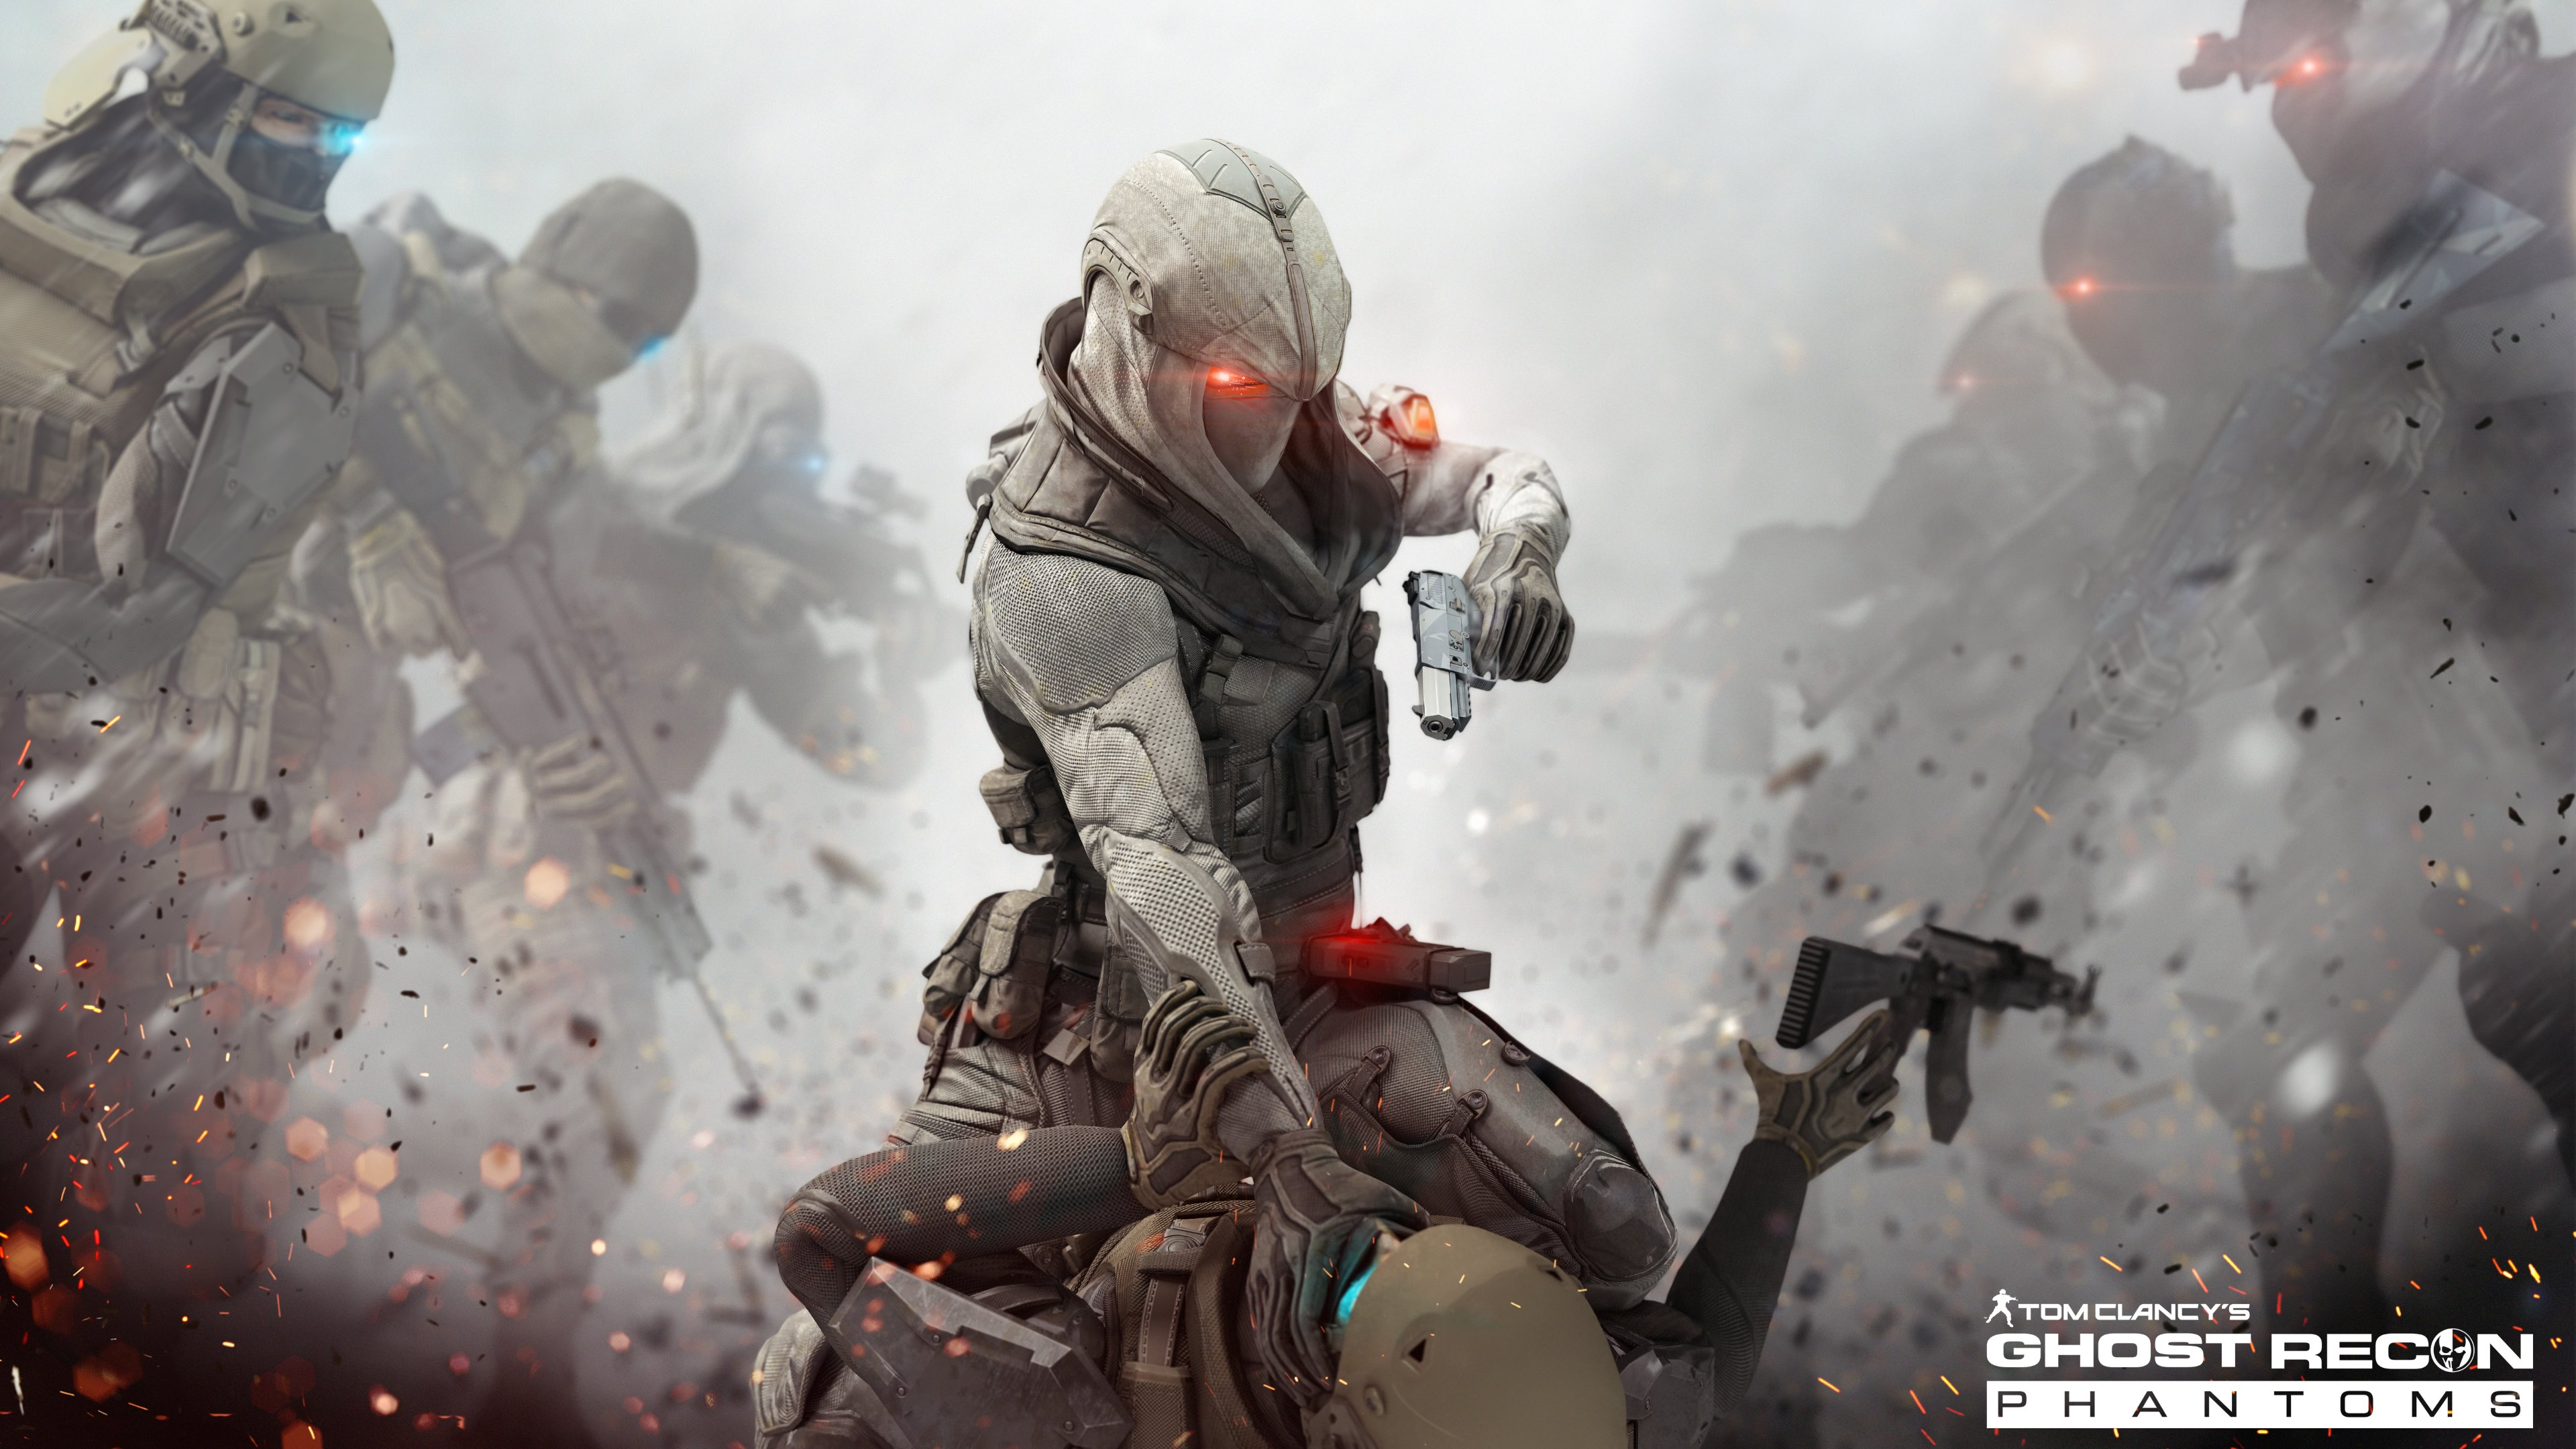 3 Tom Clancy s Ghost Recon Phantoms HD Wallpapers  - tom clancys ghost recon phantoms wallpapers